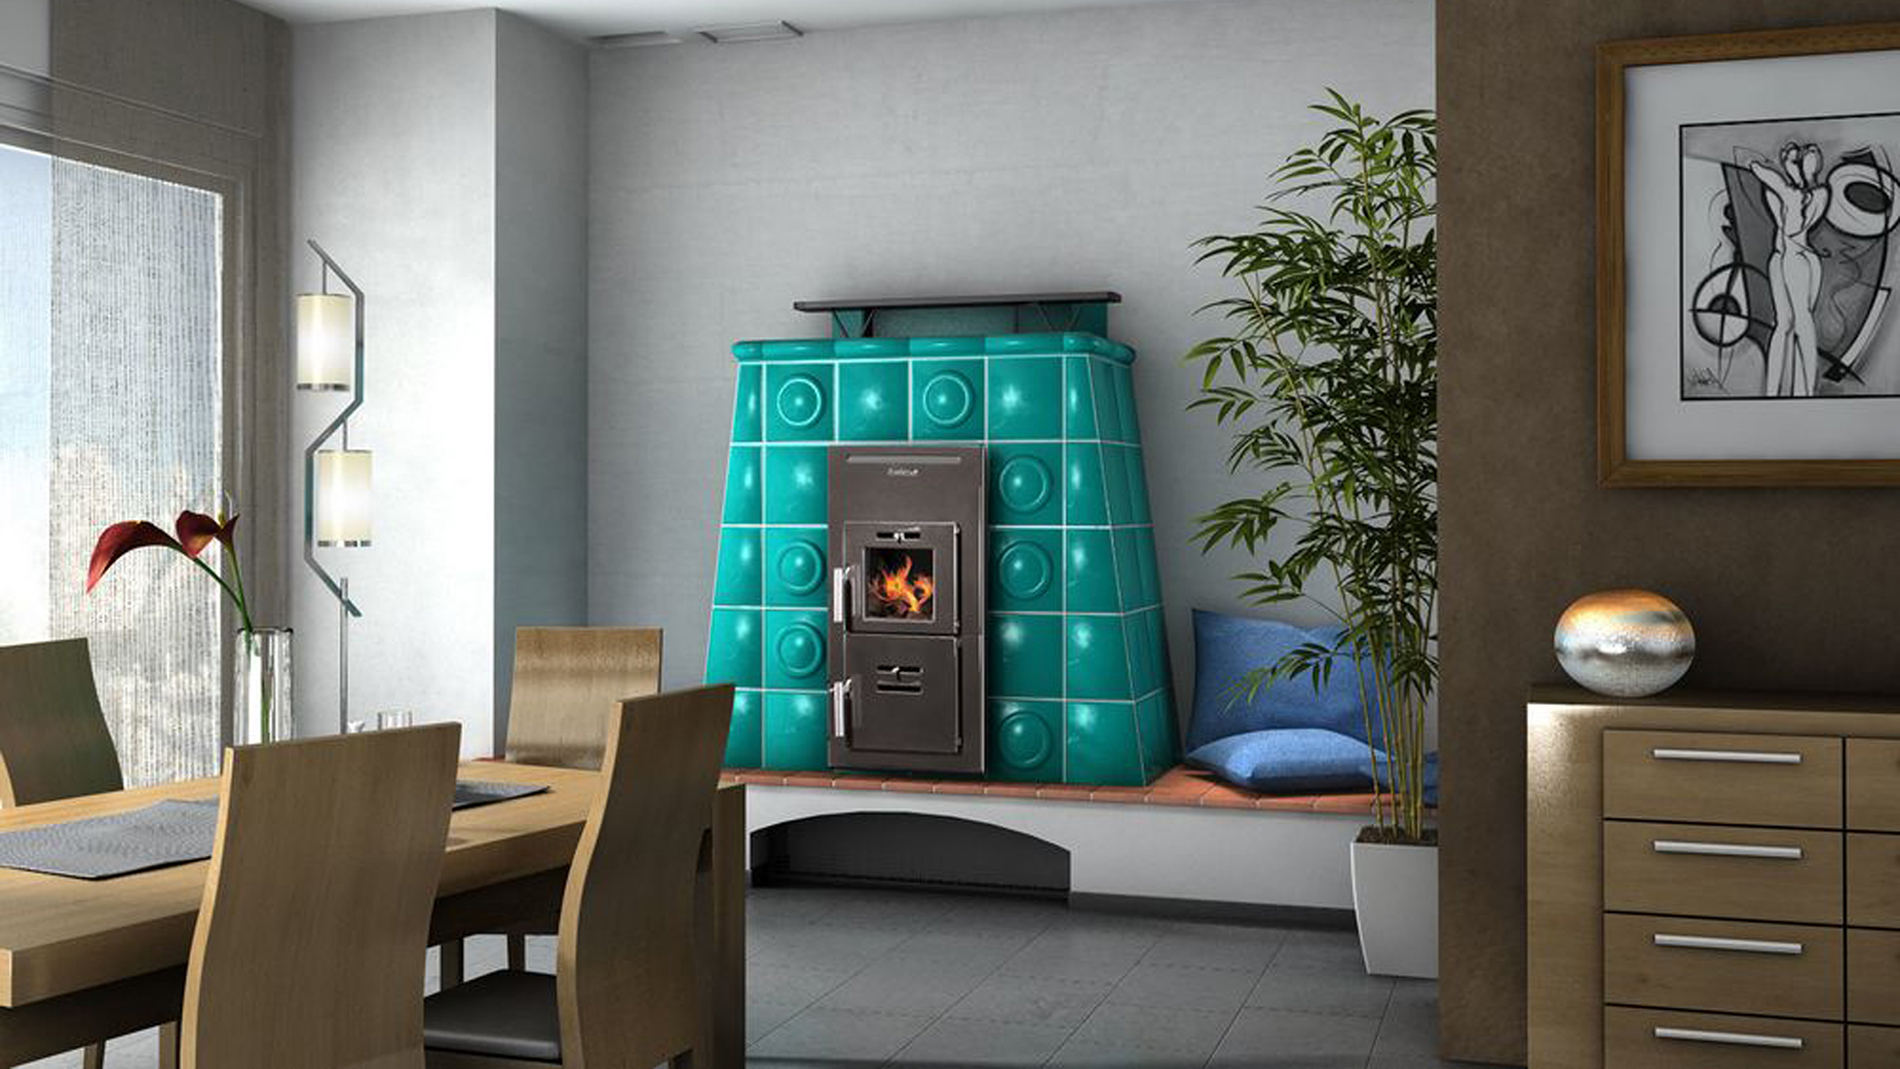 Warm-air tiled stove